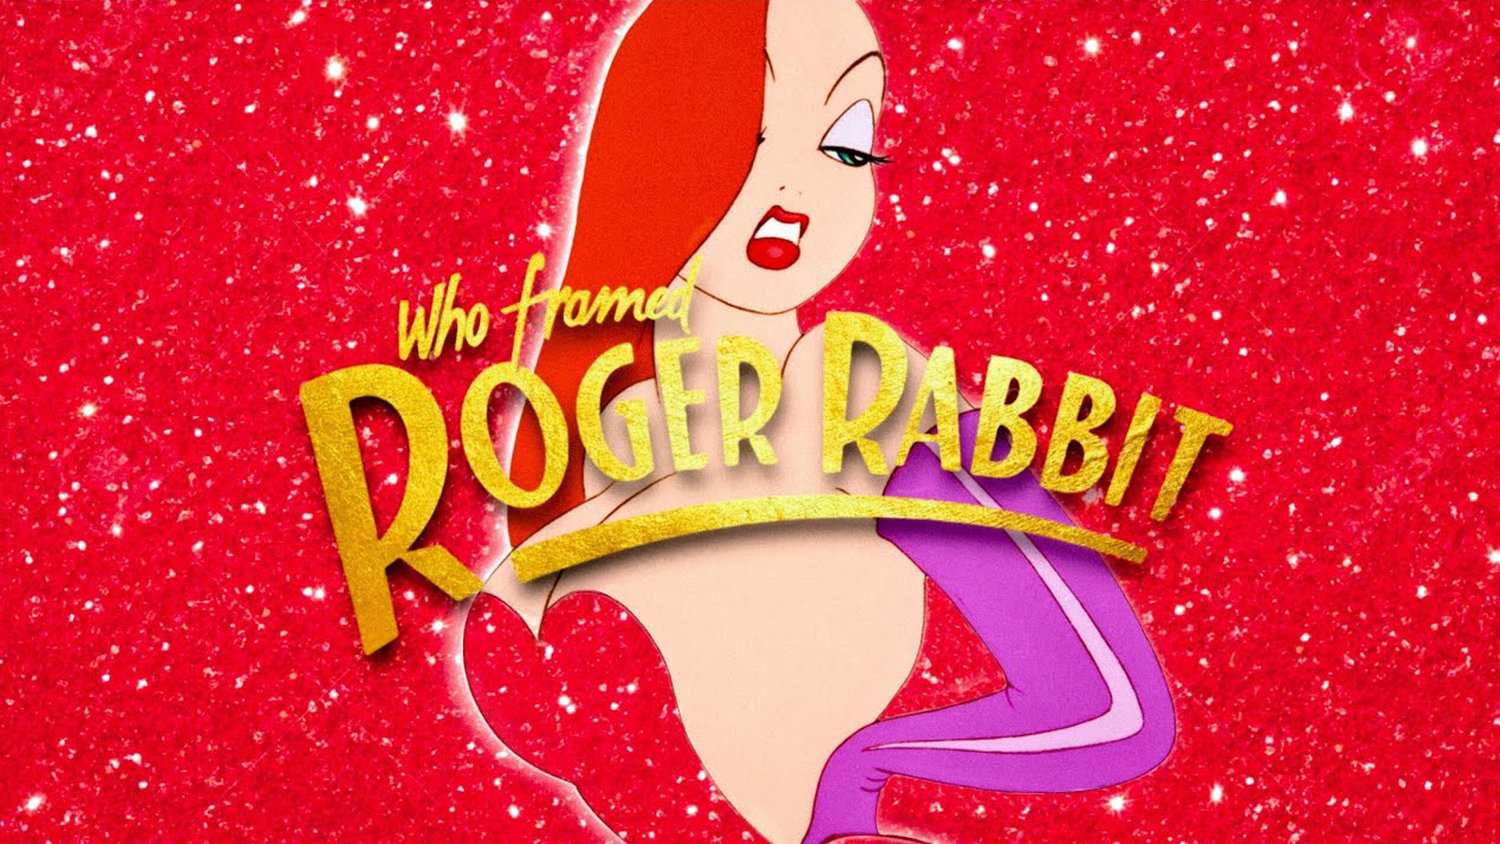 WHO FRAMED ROGER RABBIT? Video Essay Features Amazing Behind the Scenes Footage